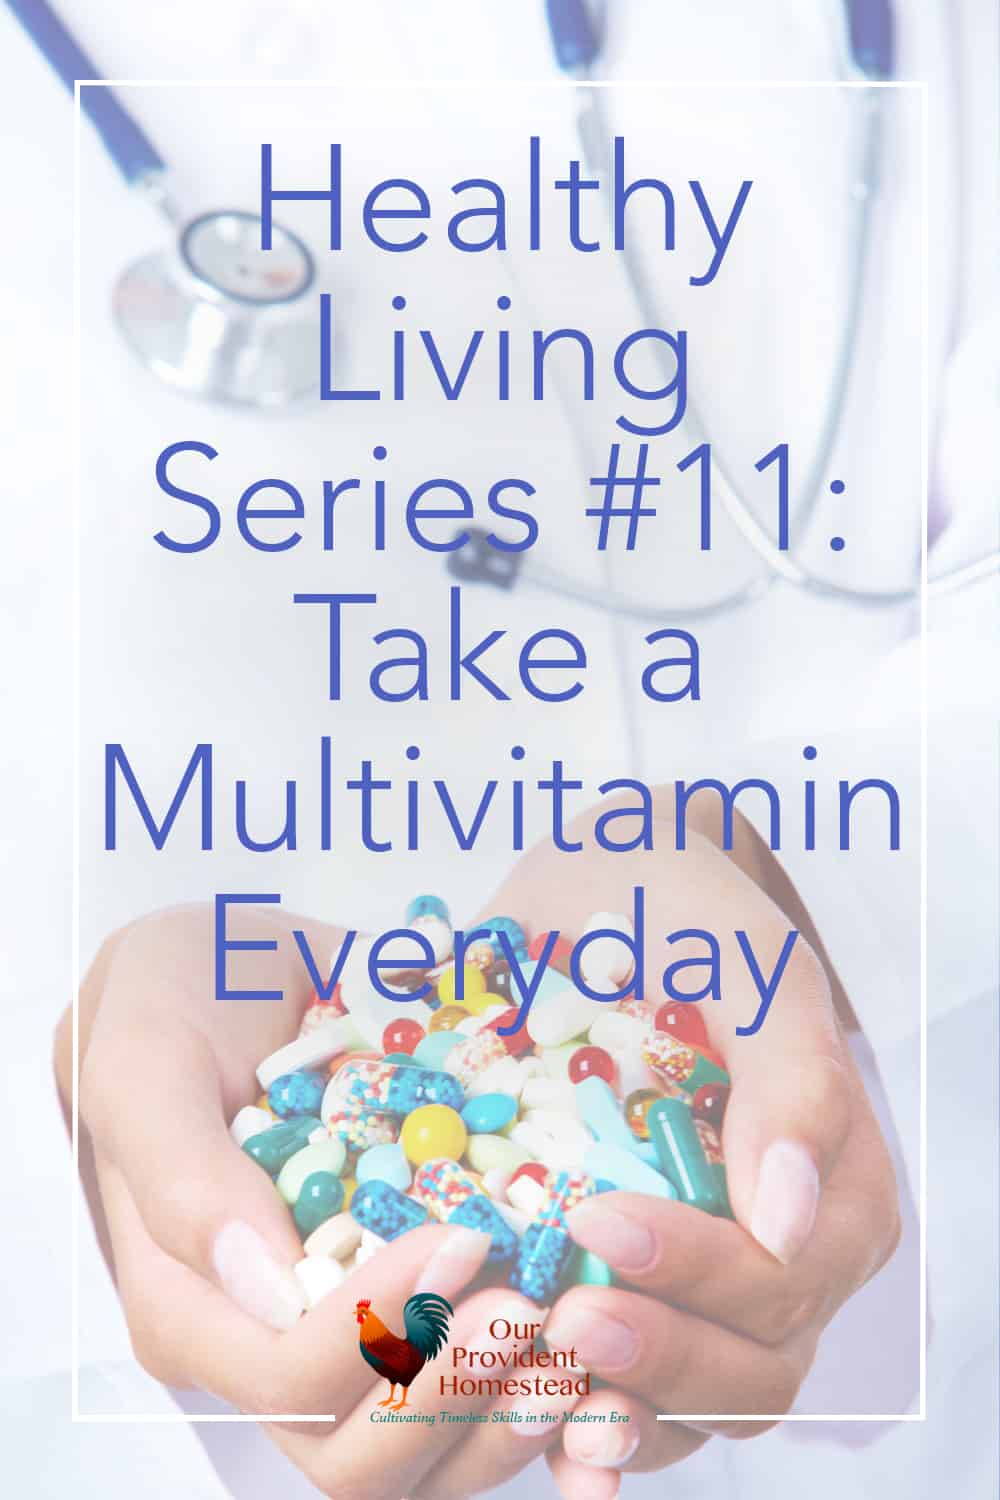 What is one easy way to increase your health each day? Click here to see how taking a multivitamin daily can help you take control of your health. #healthyliving #healthyhabits #vitamins